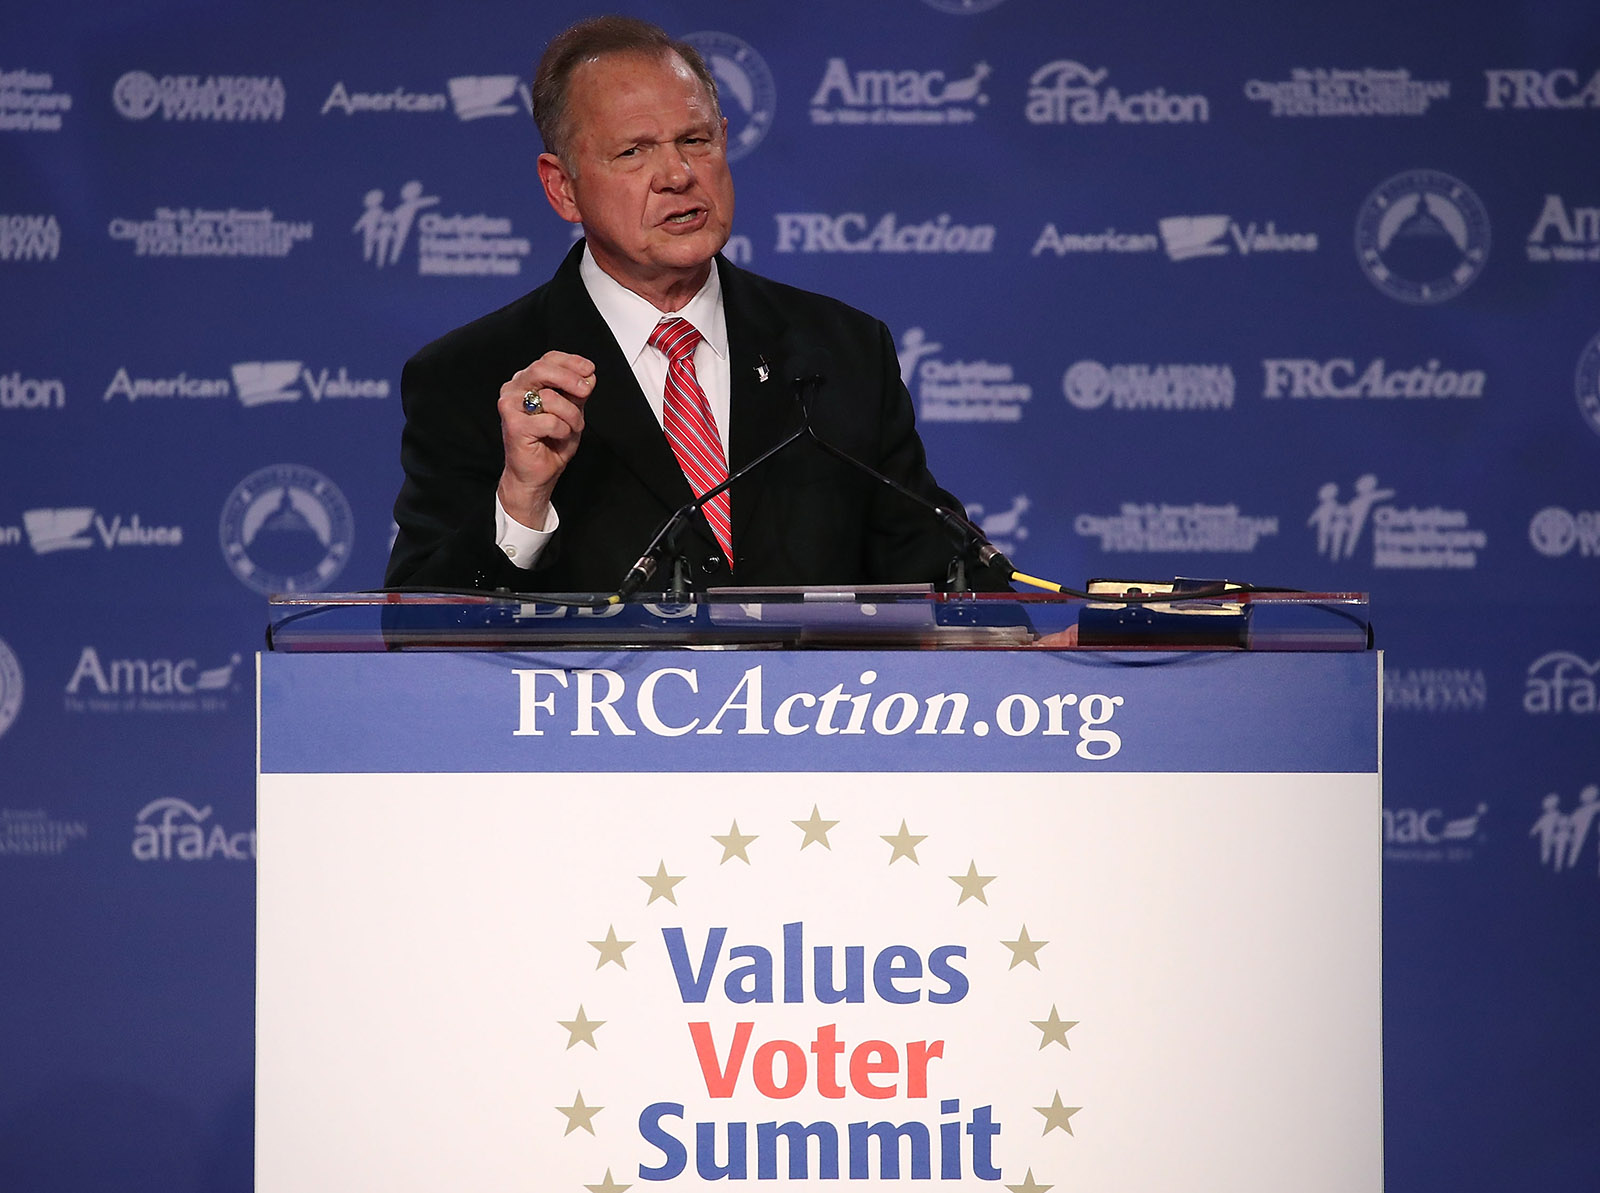 Roy Moore at the 2017 Values Voter Summit